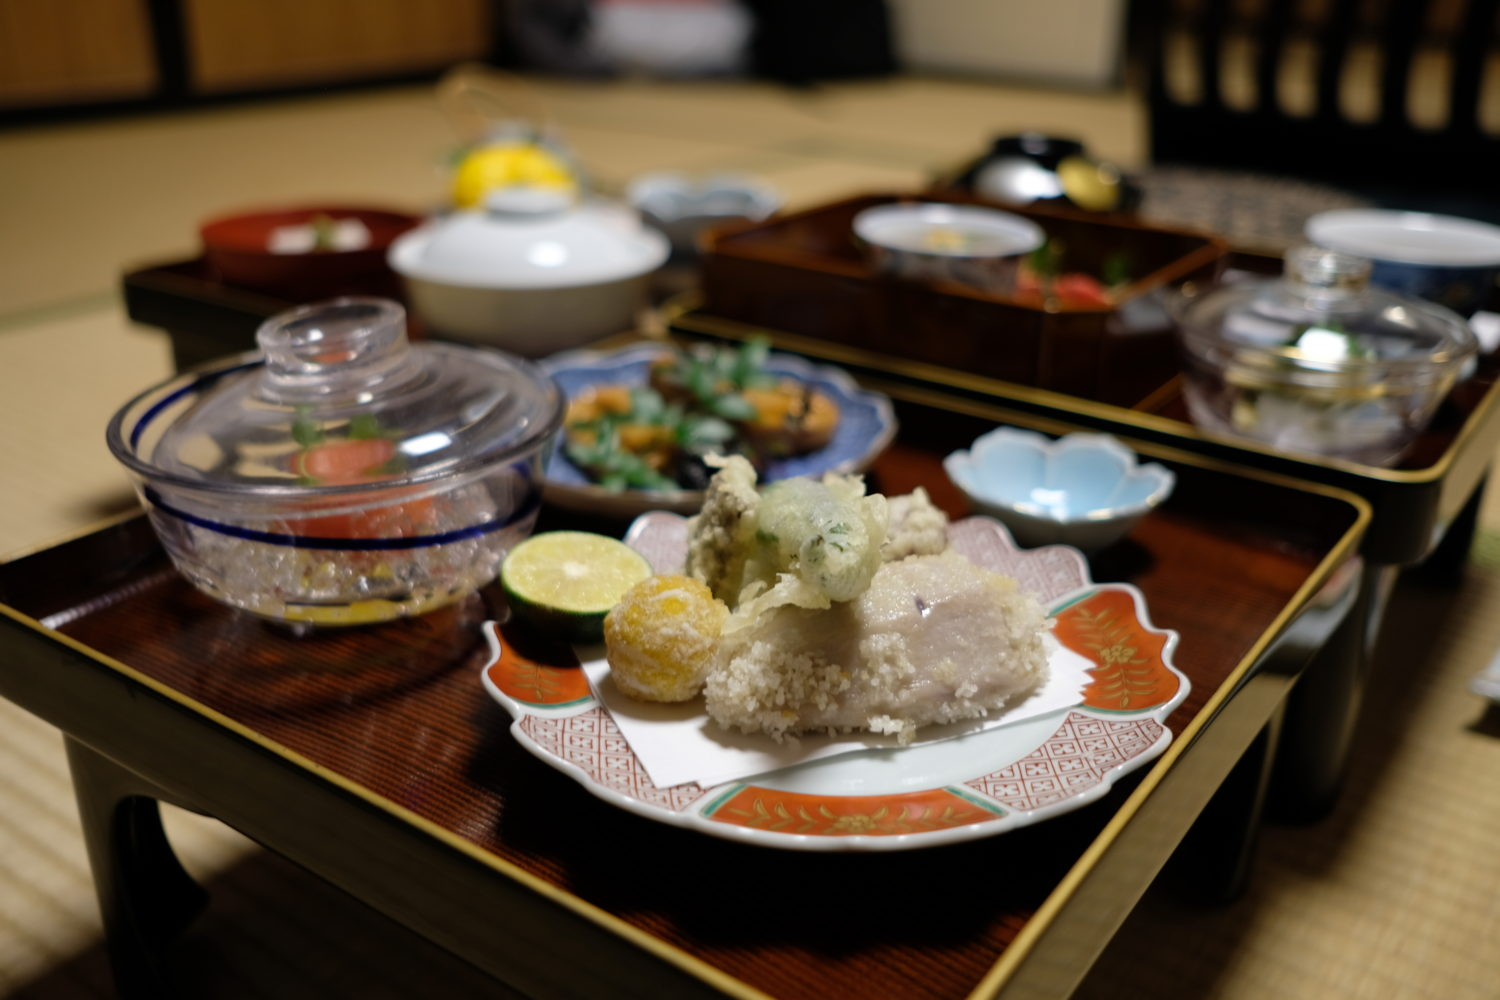 Shojinryori, japanese vegetarian food for monk